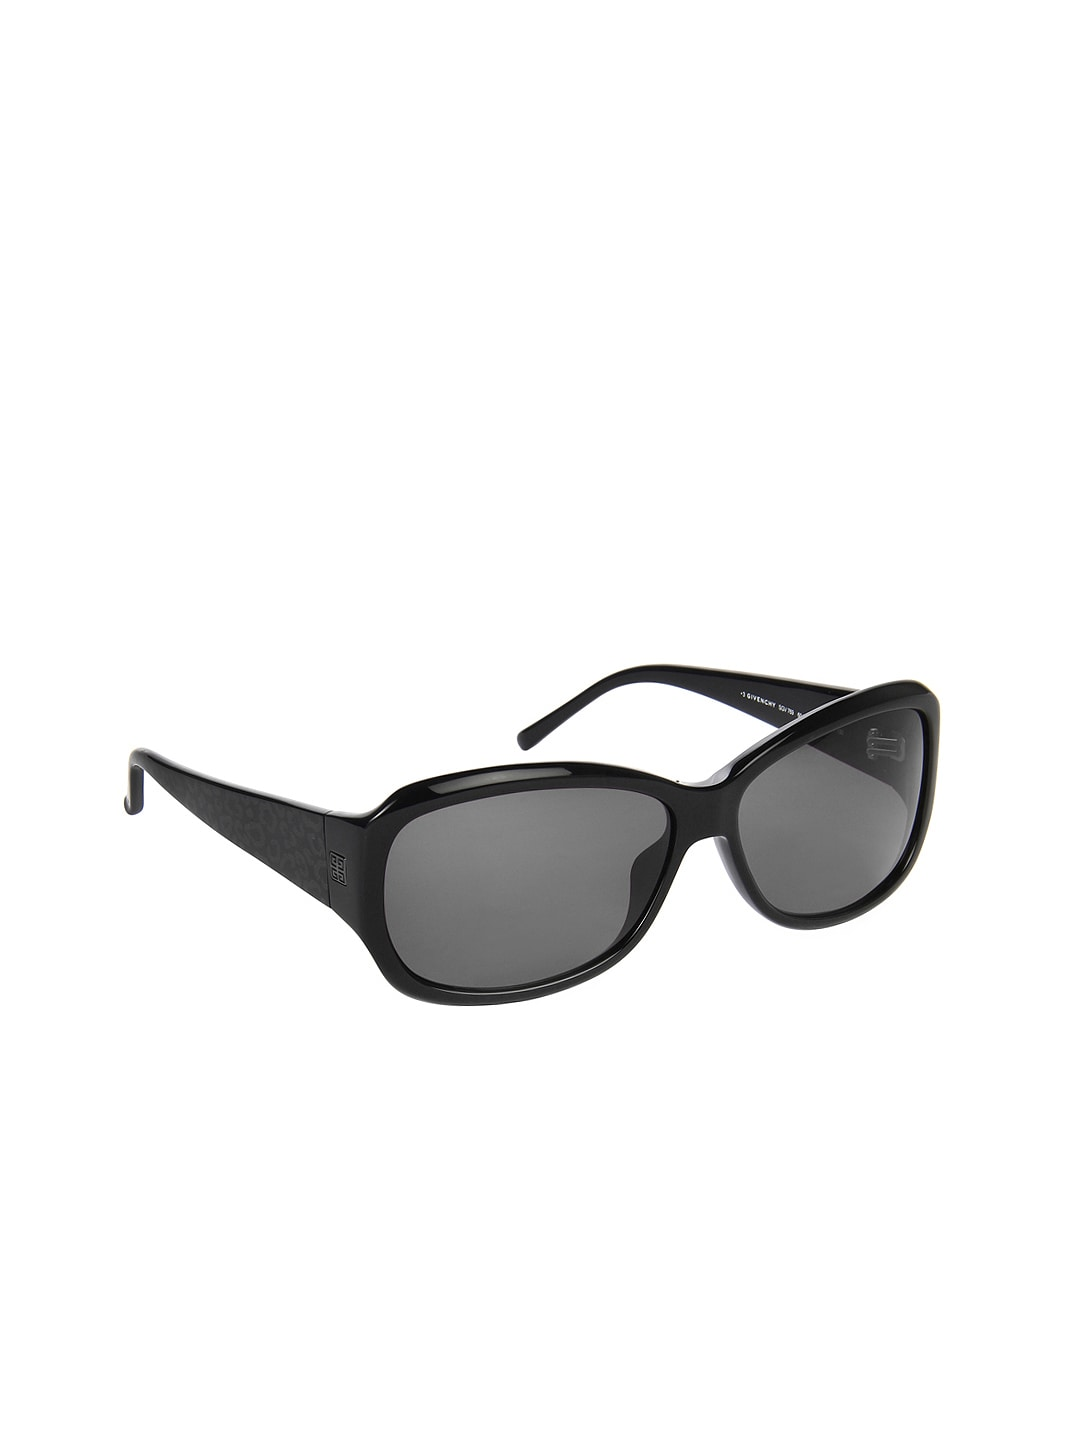 Givenchy Givenchy Women Sunglasses SGV-769 COL-0700 (Multicolor)